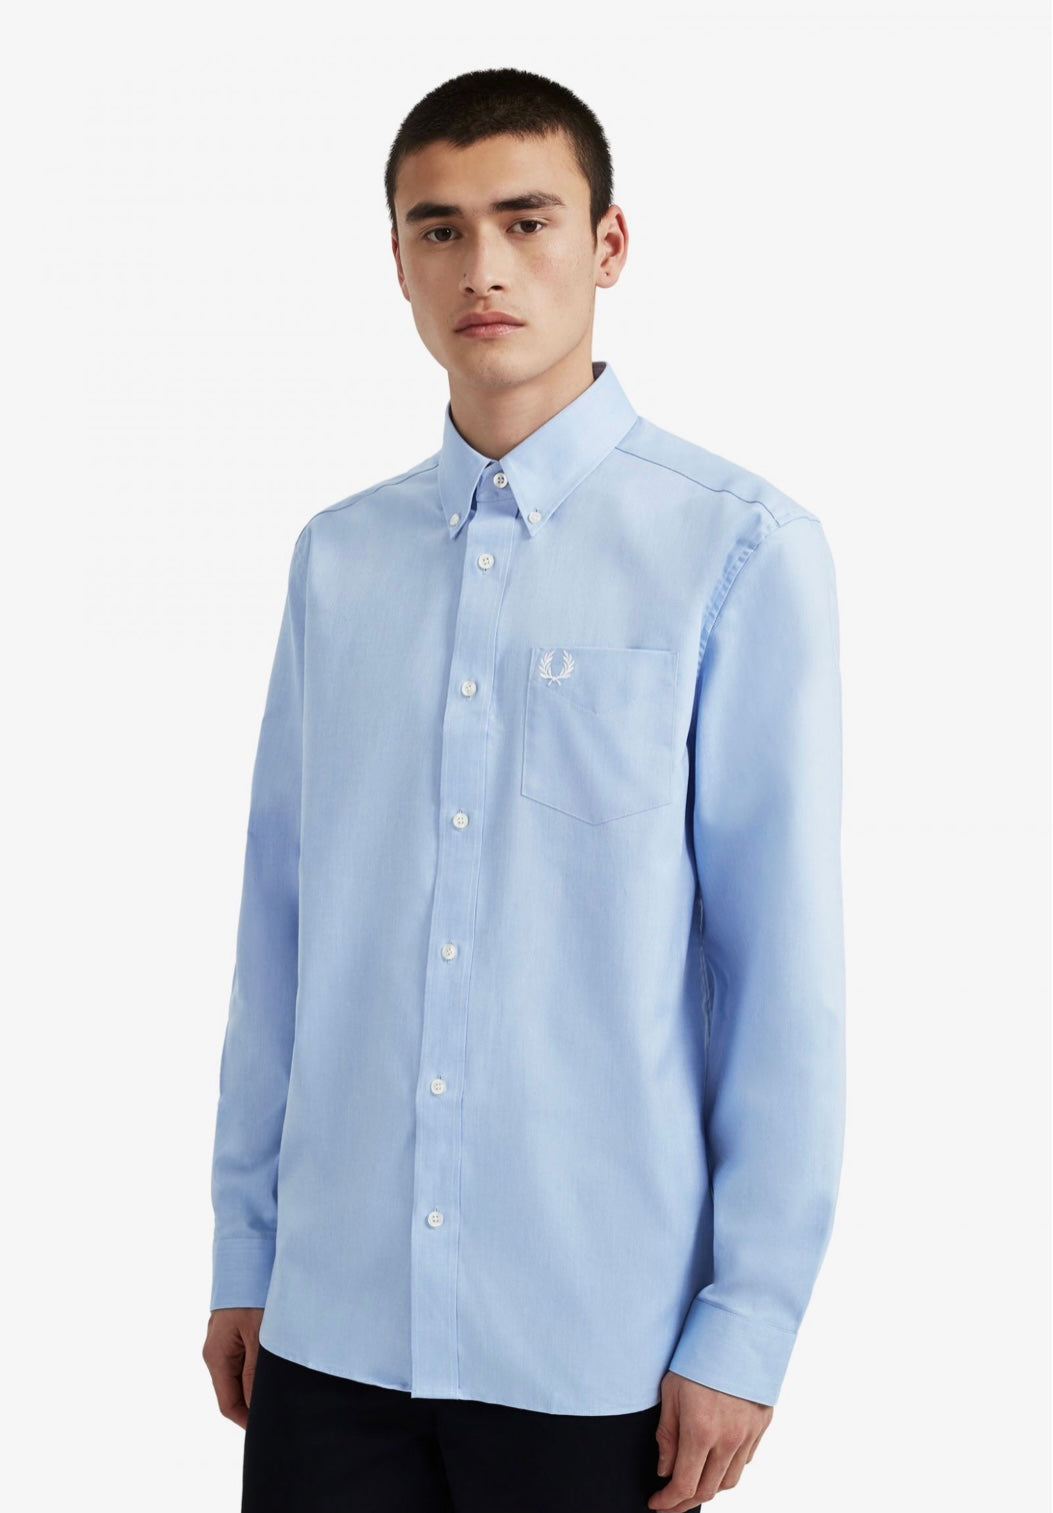 Fred perry Oxford Shirt  - Light Smoke